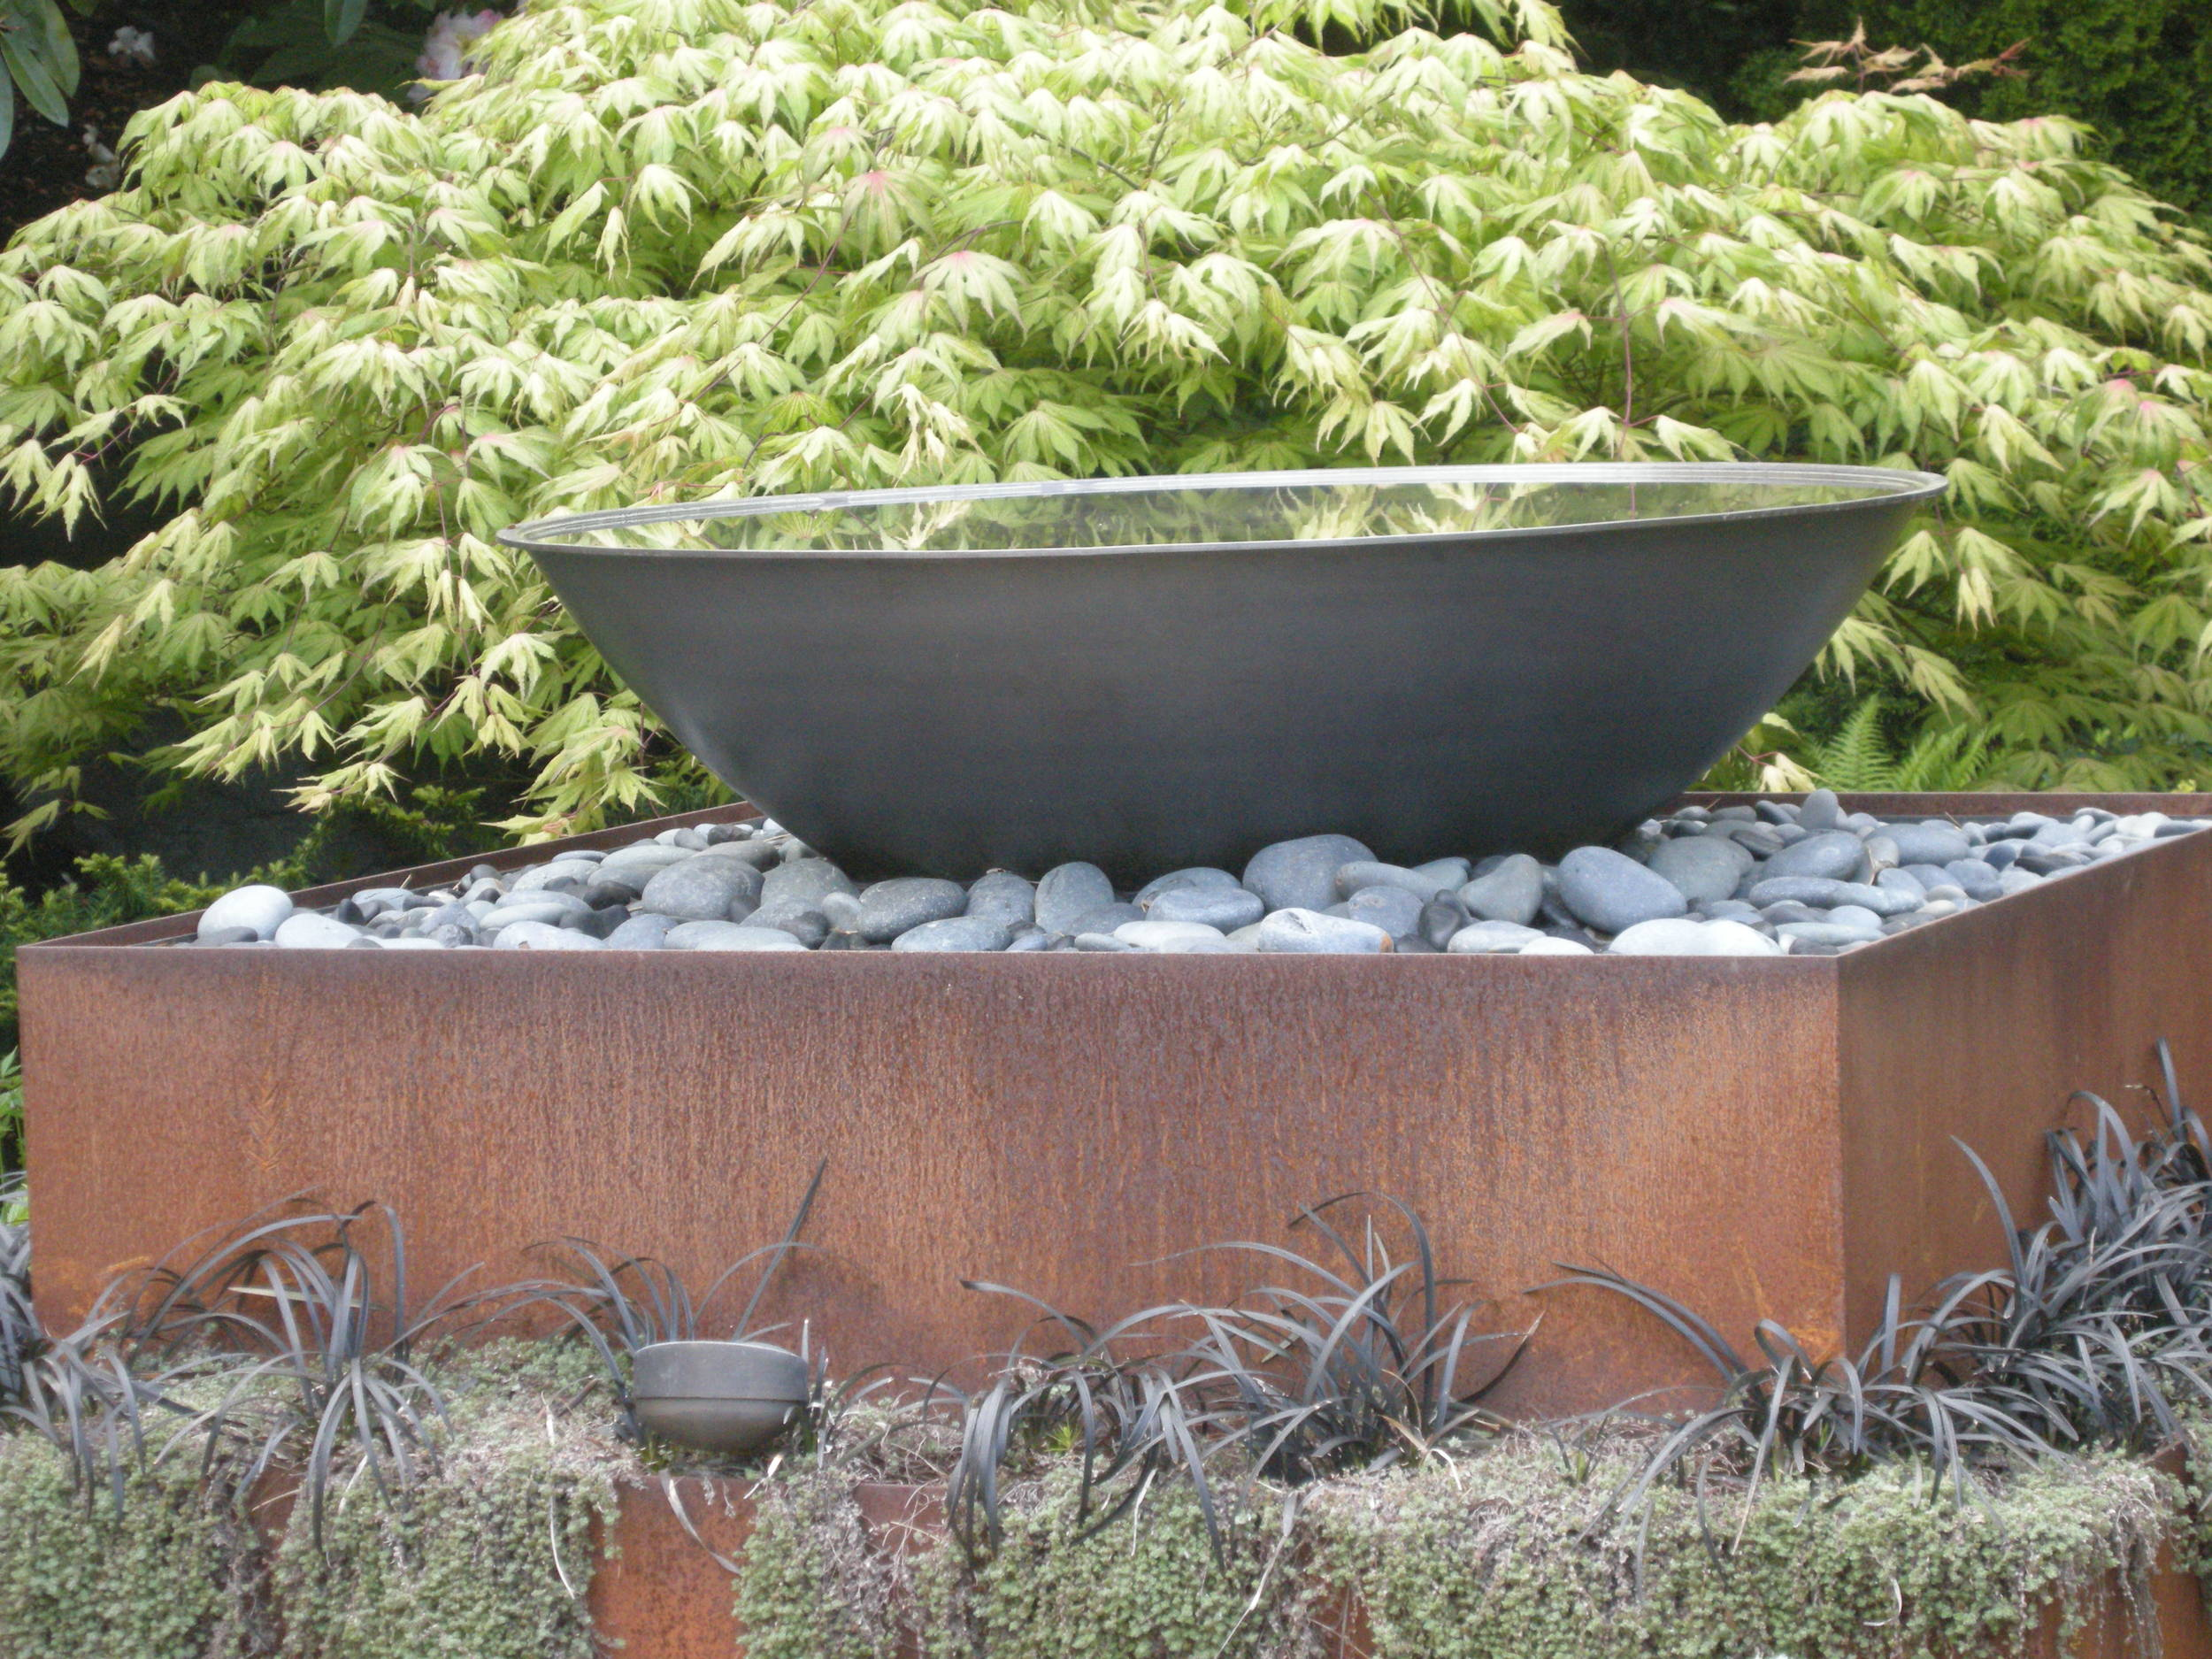 Acer palmatum 'Aka Shigitatsusawa' is ethereal, setting off this water feature at rest.